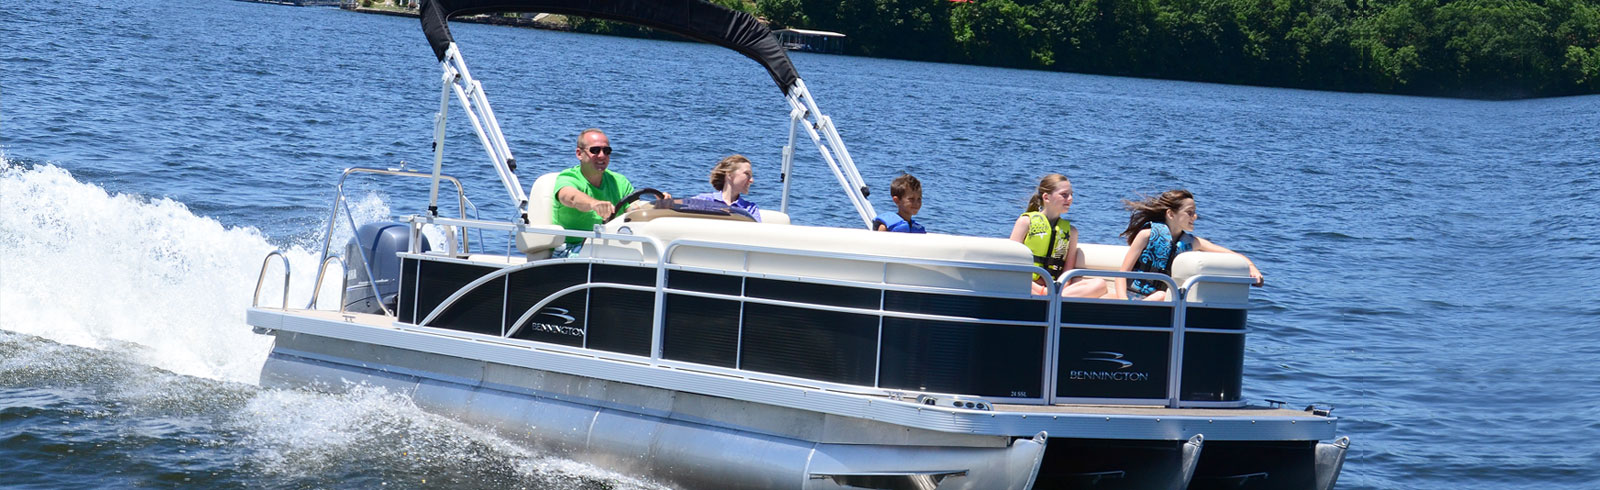 lake of the ozarks marina and boat rentals tan tar a resort